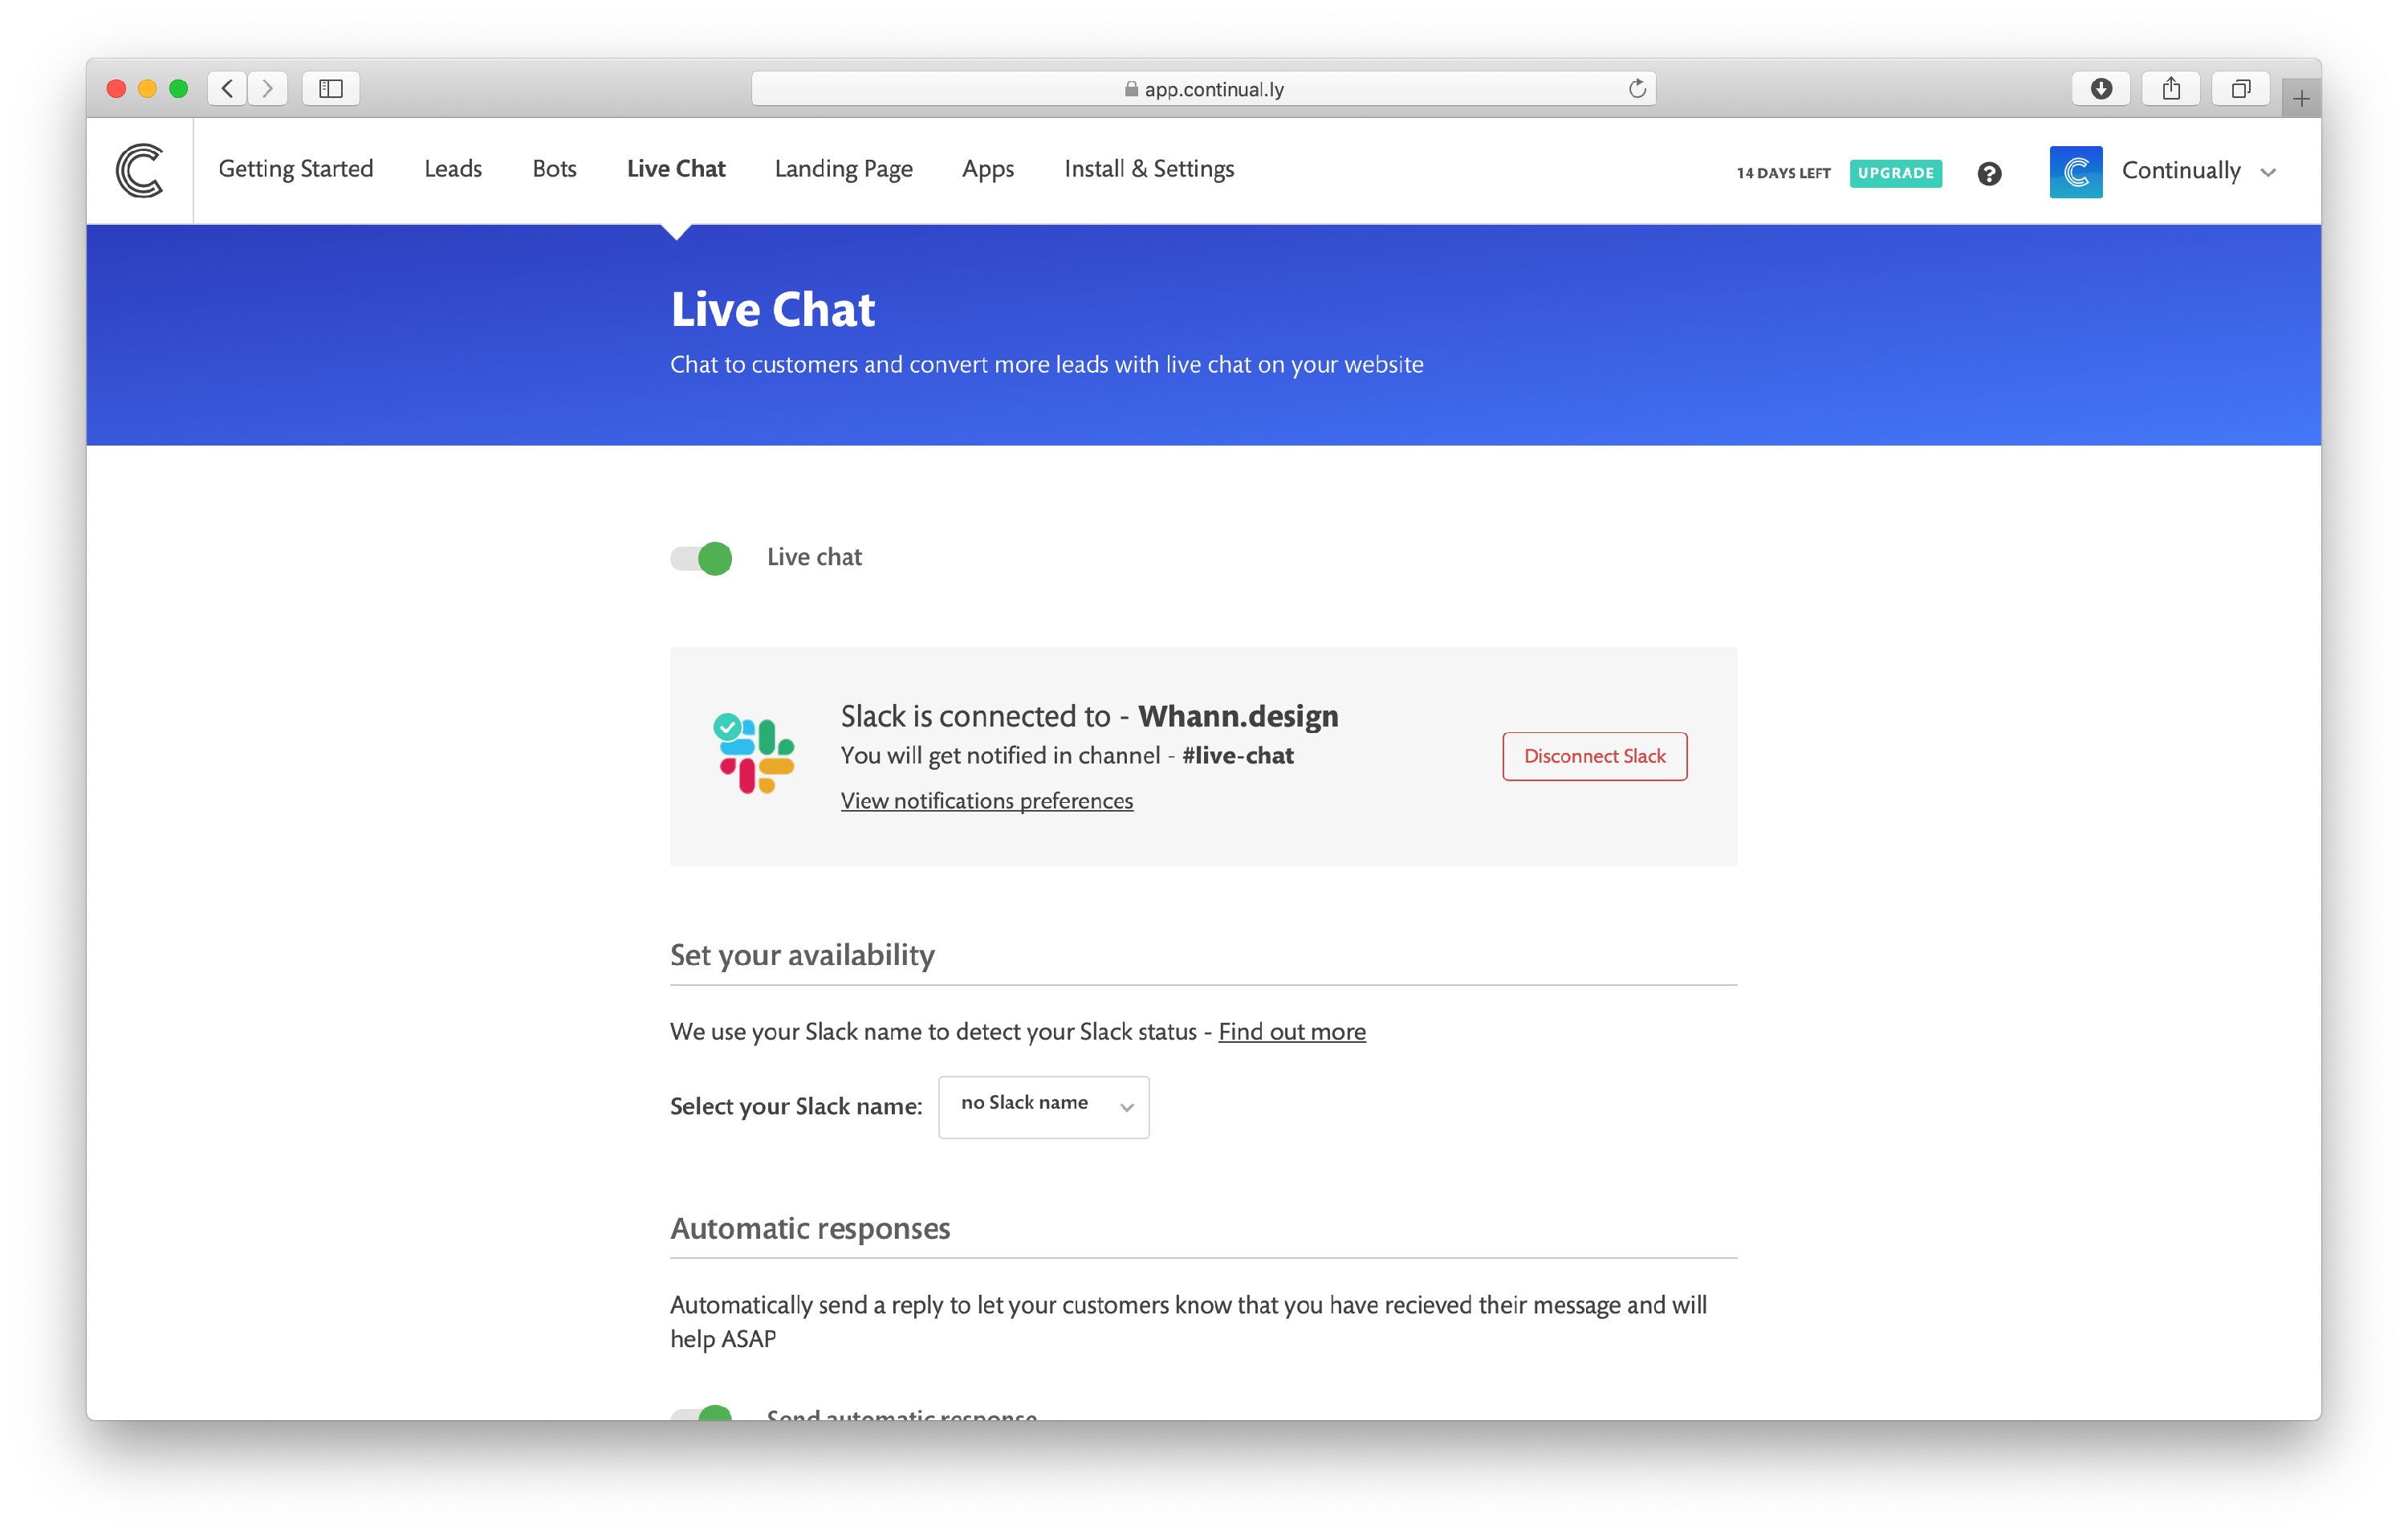 How to turn Live chat on/off: